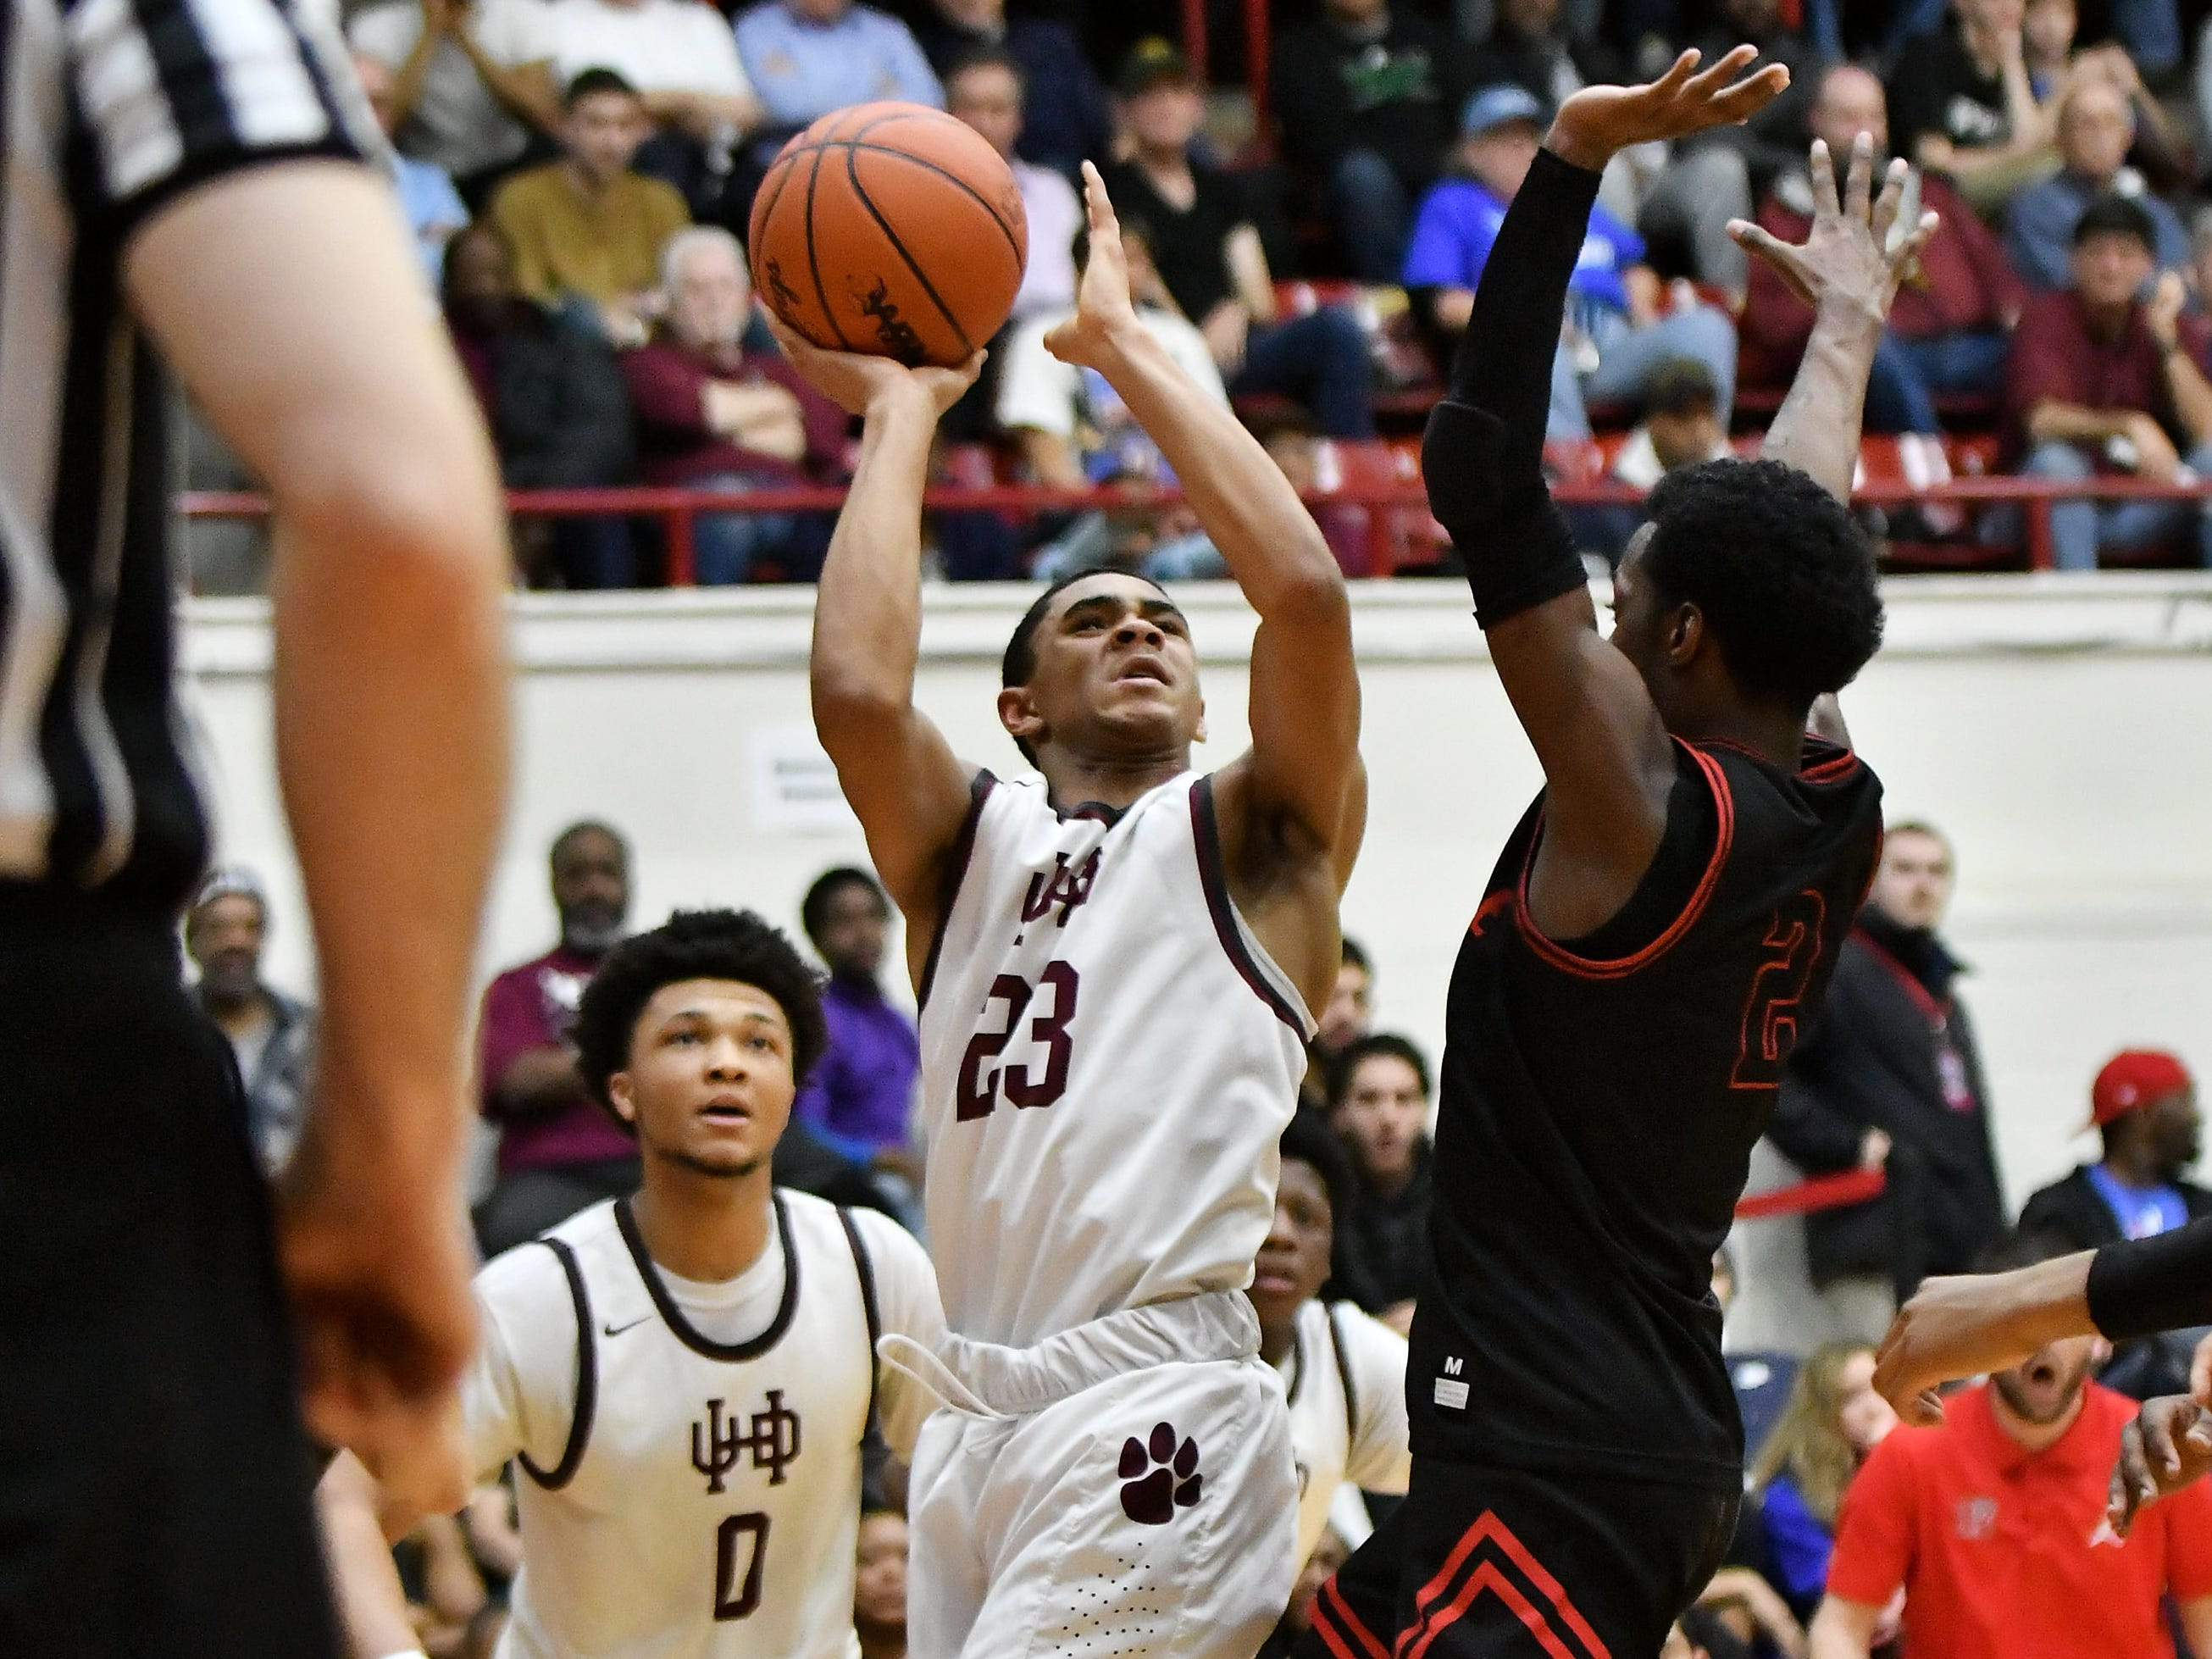 Roseville's Martell Turner (2) guards U-D Jesuit's JonMarcus Roland (23) in the first half.